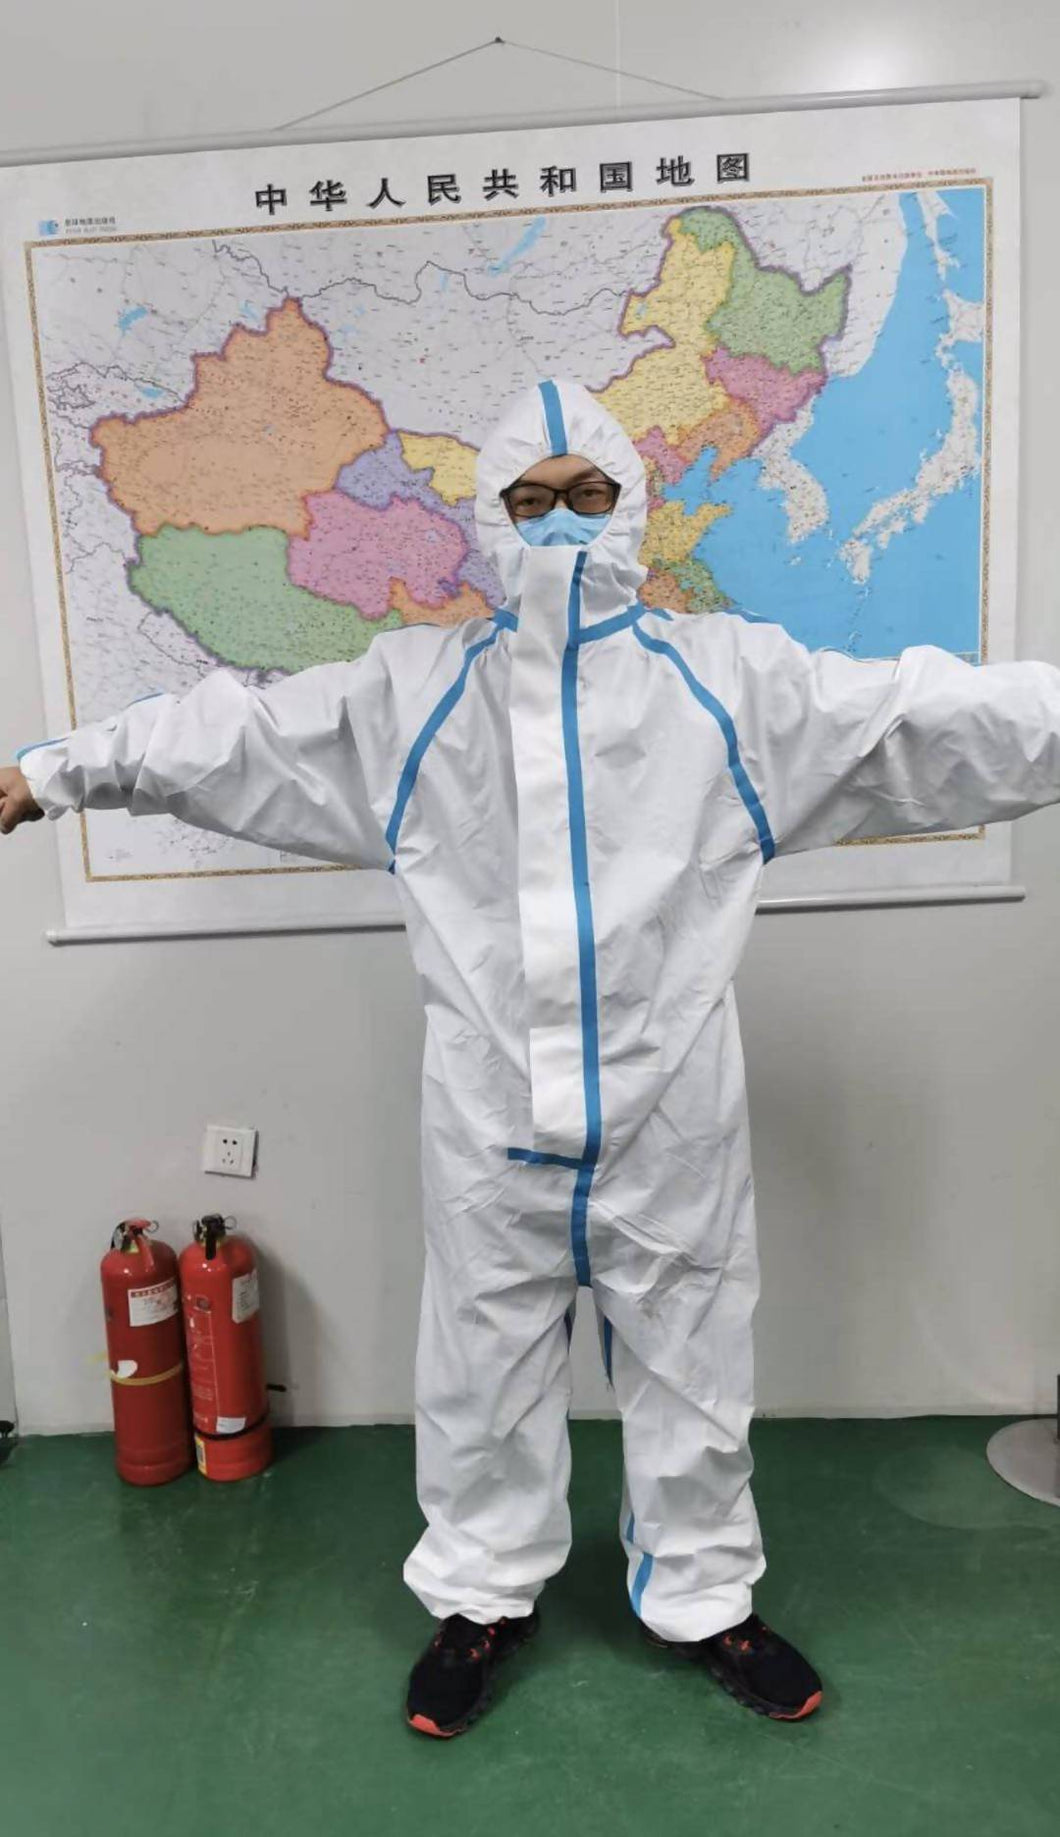 Sterile Type 4 Coveralls - one size 185 cm - Care Home Shopping